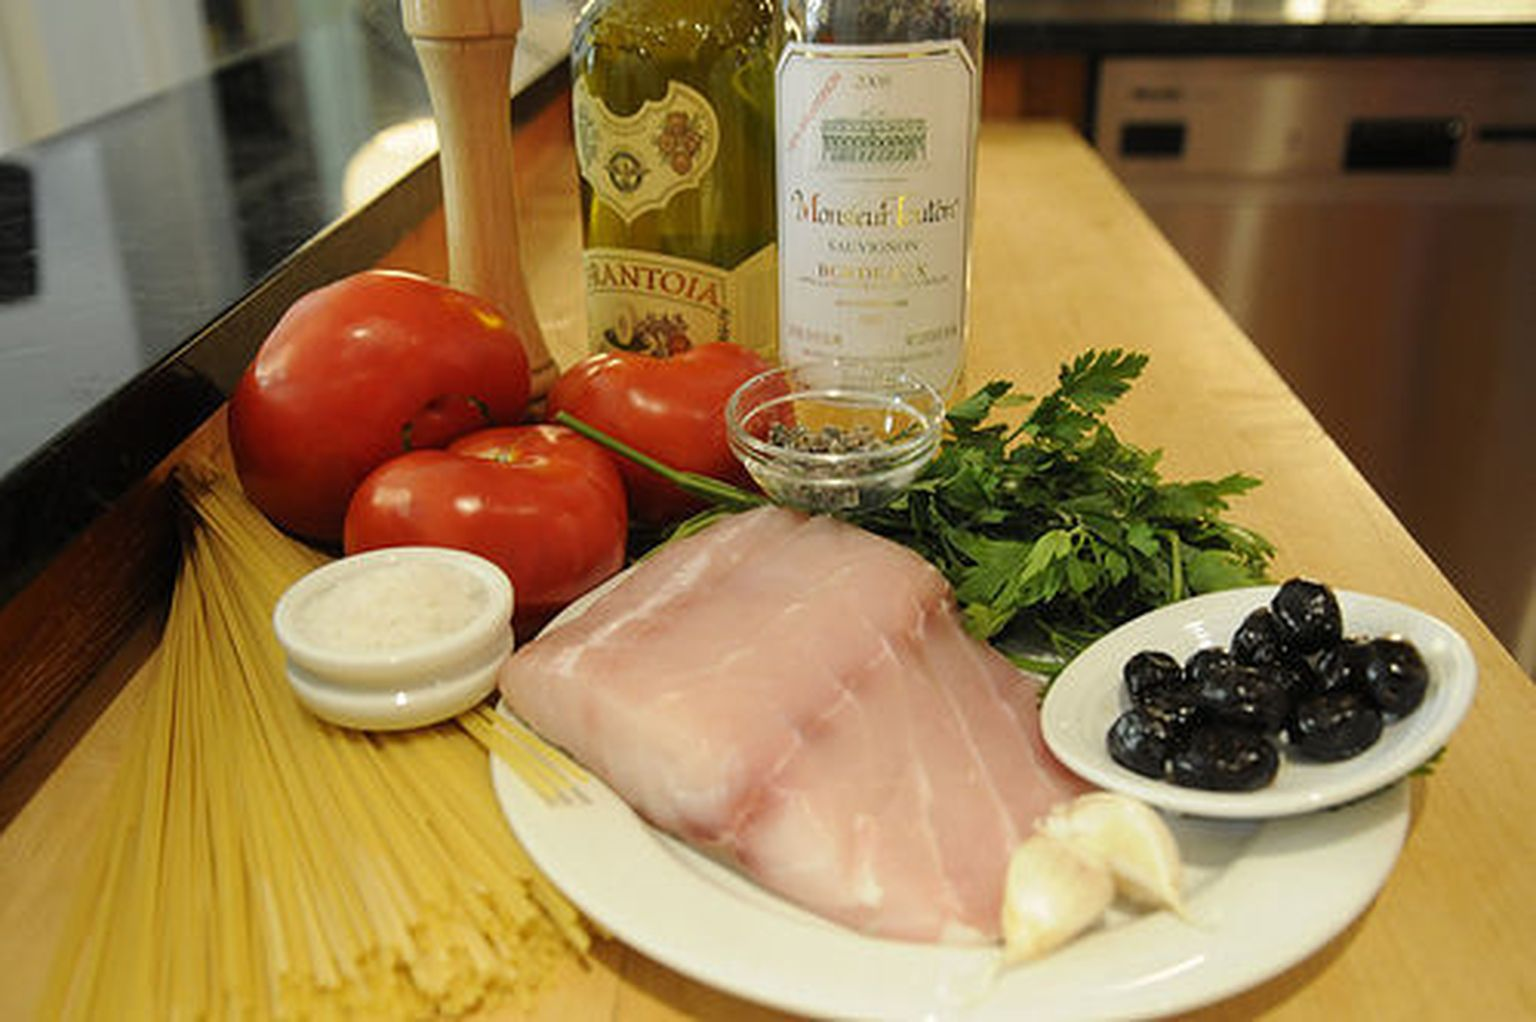 Grilled Striped Bass Recipes Barefoot Contessa the (not barefoot) contessa's fish pasta